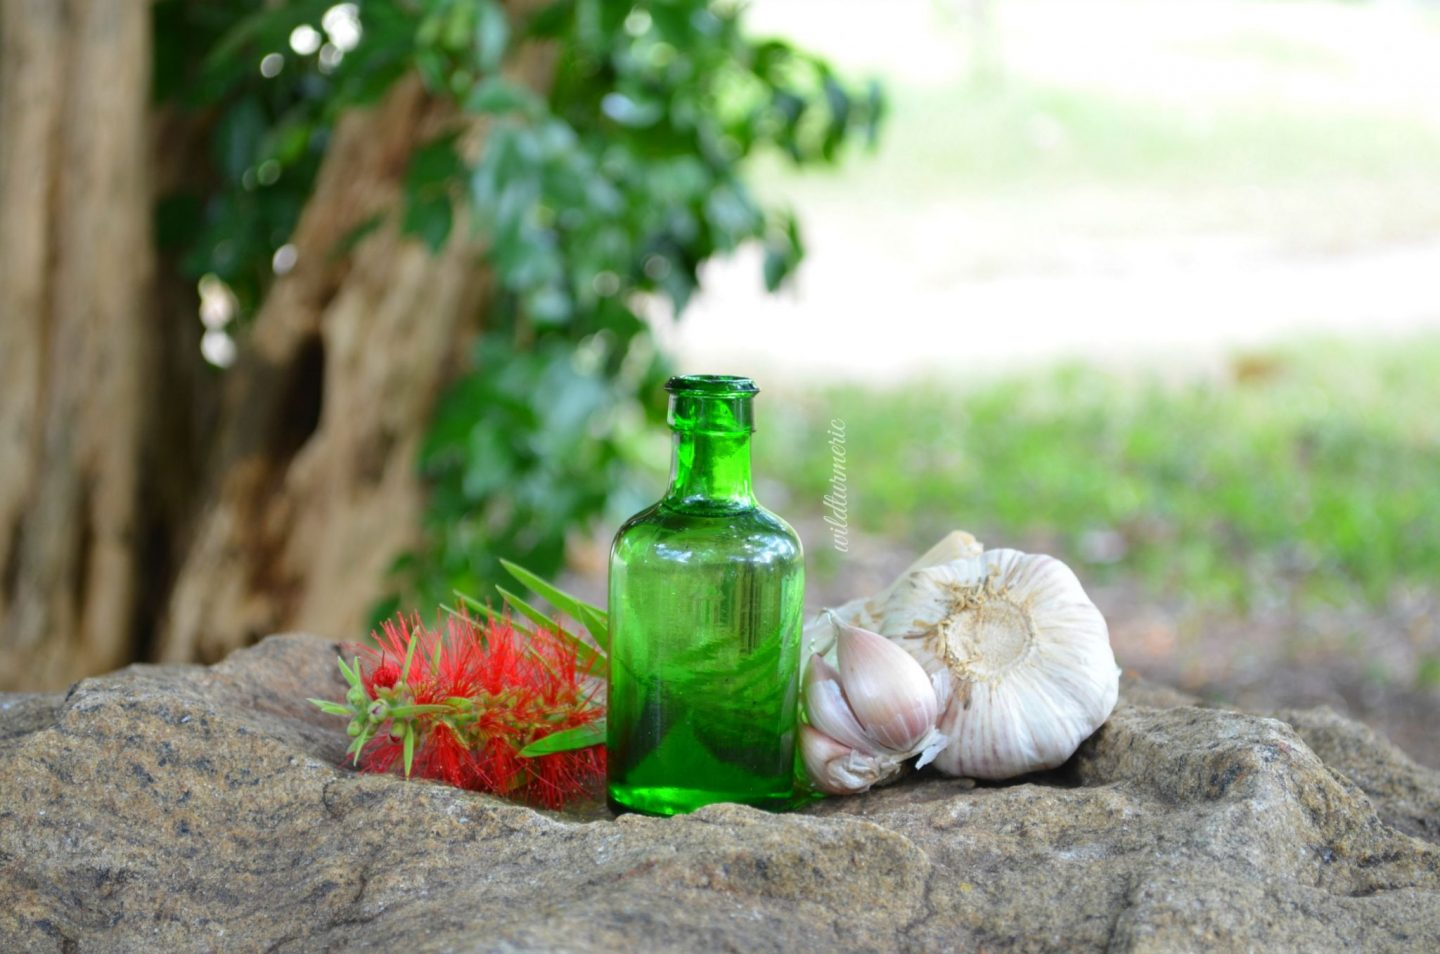 10 Top Benefits & Uses Of Garlic Oil For Skin, Hair & Health